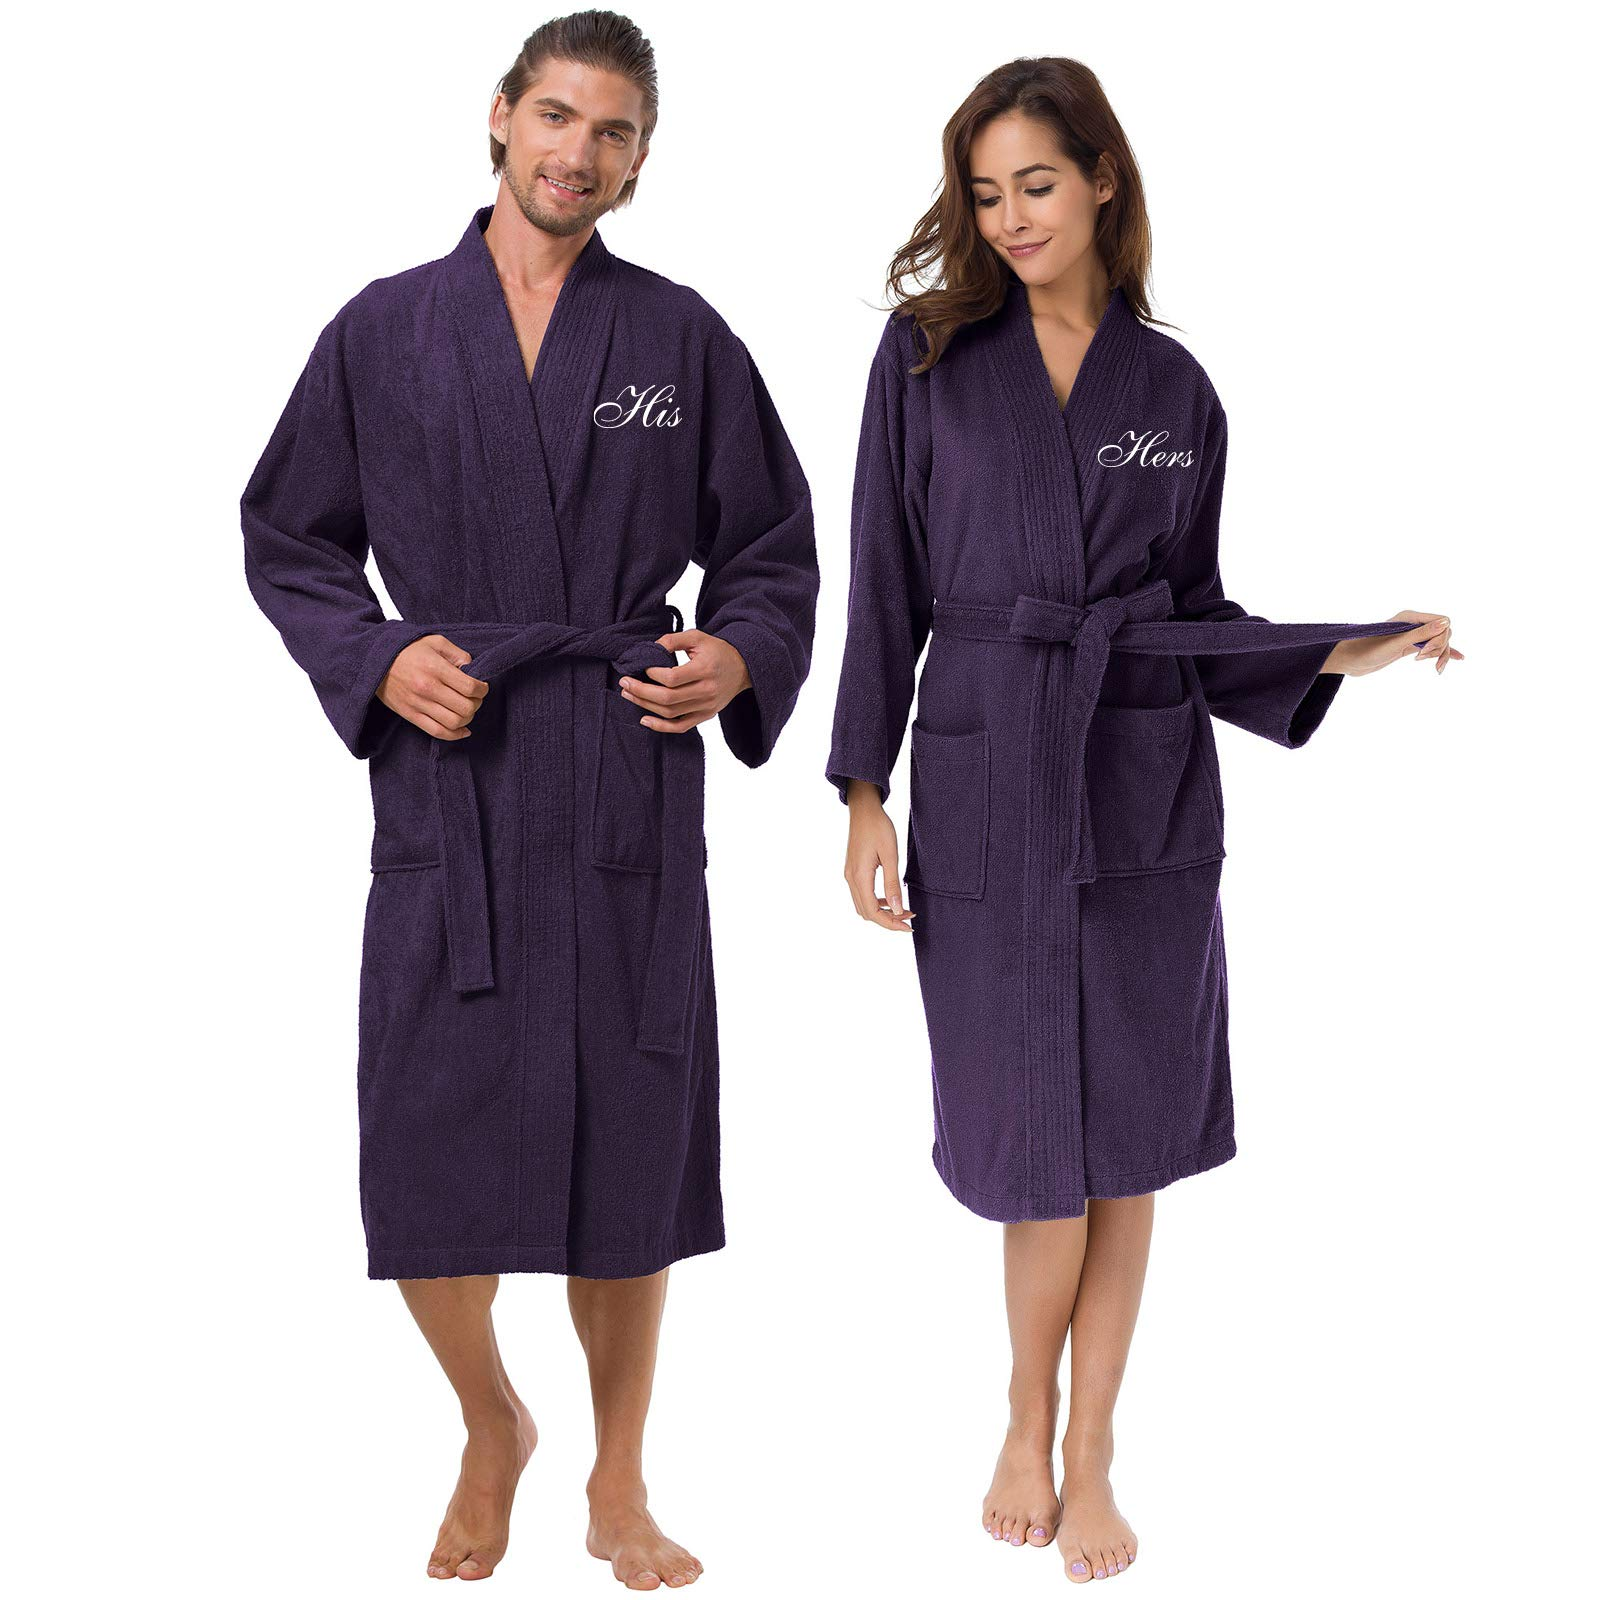 AW Terry Cotton Couple Robe Set Spa Bathrobes for Women and Men - Embroidery His and Her Purple Kimono Hotel Robe